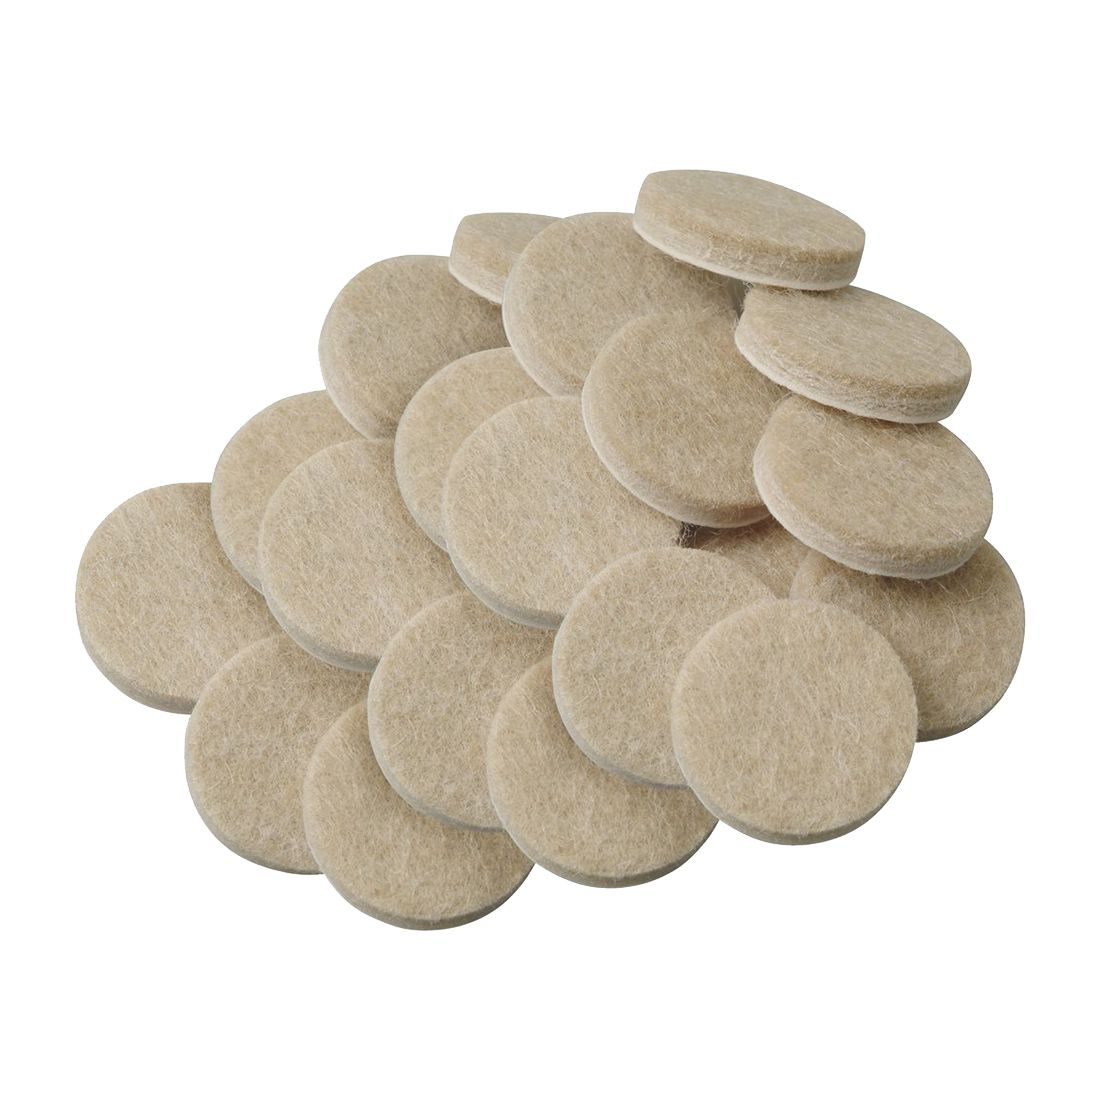 Promotion! 20pcs Self-Stick 3/4 Inch Furniture Felt Pads For Hard Surfaces - Oatmeal, Round